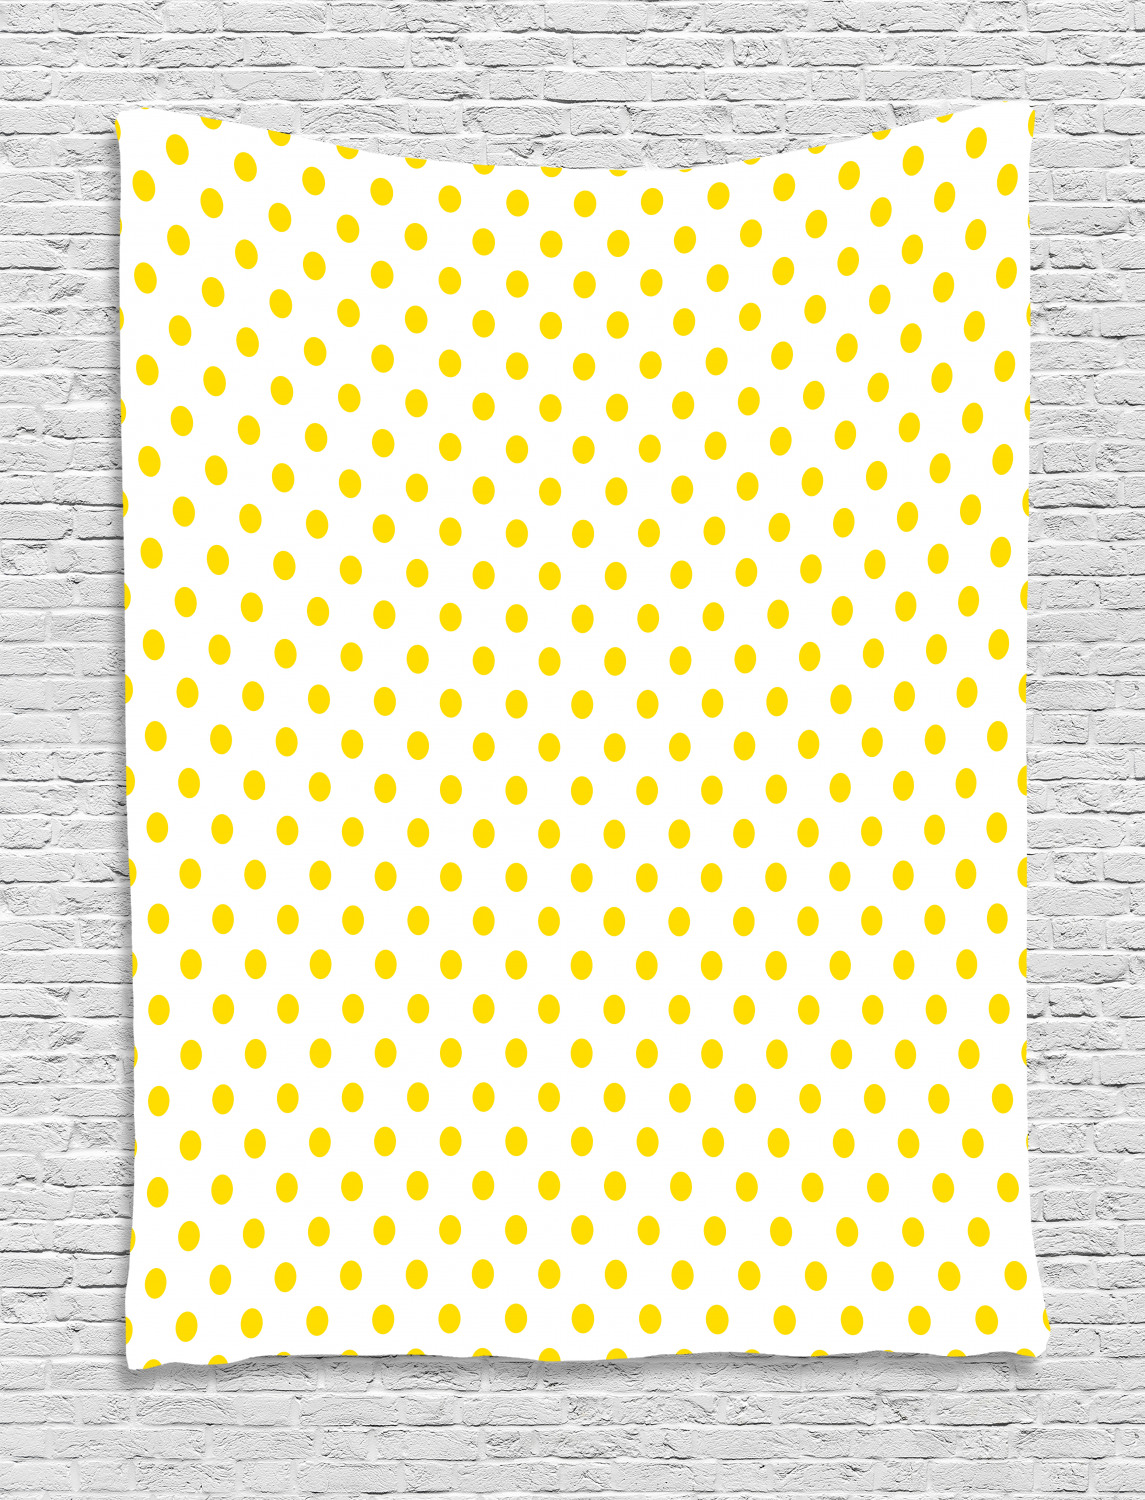 Yellow Tapestry Picnic Like Cute 50s 60s 70s Retro Themed Yellow Spotted White Pattern Print Wall Hanging For Bedroom Living Room Dorm Decor Yellow And White By Ambesonne Walmart Com Walmart Com